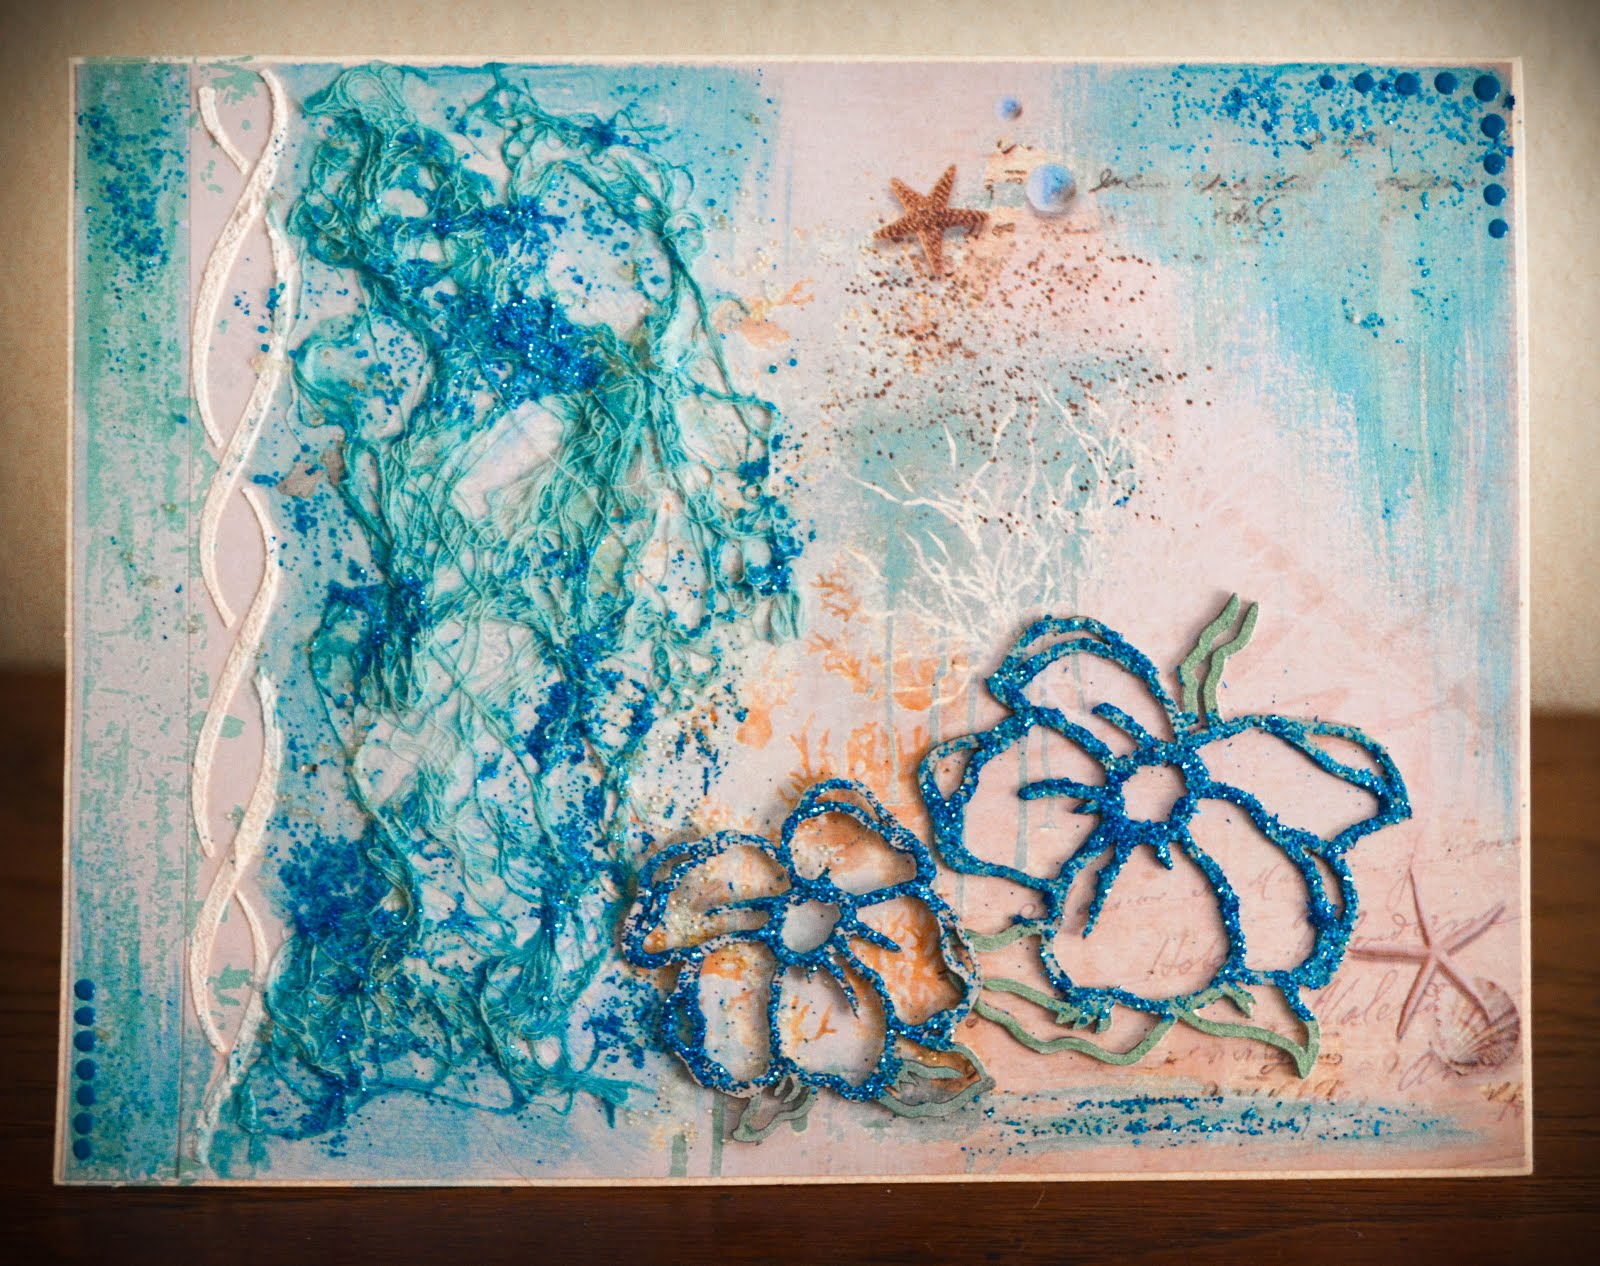 Mixed media card with stenciling, glitter, and chipboard flowers in aqua blue and beige